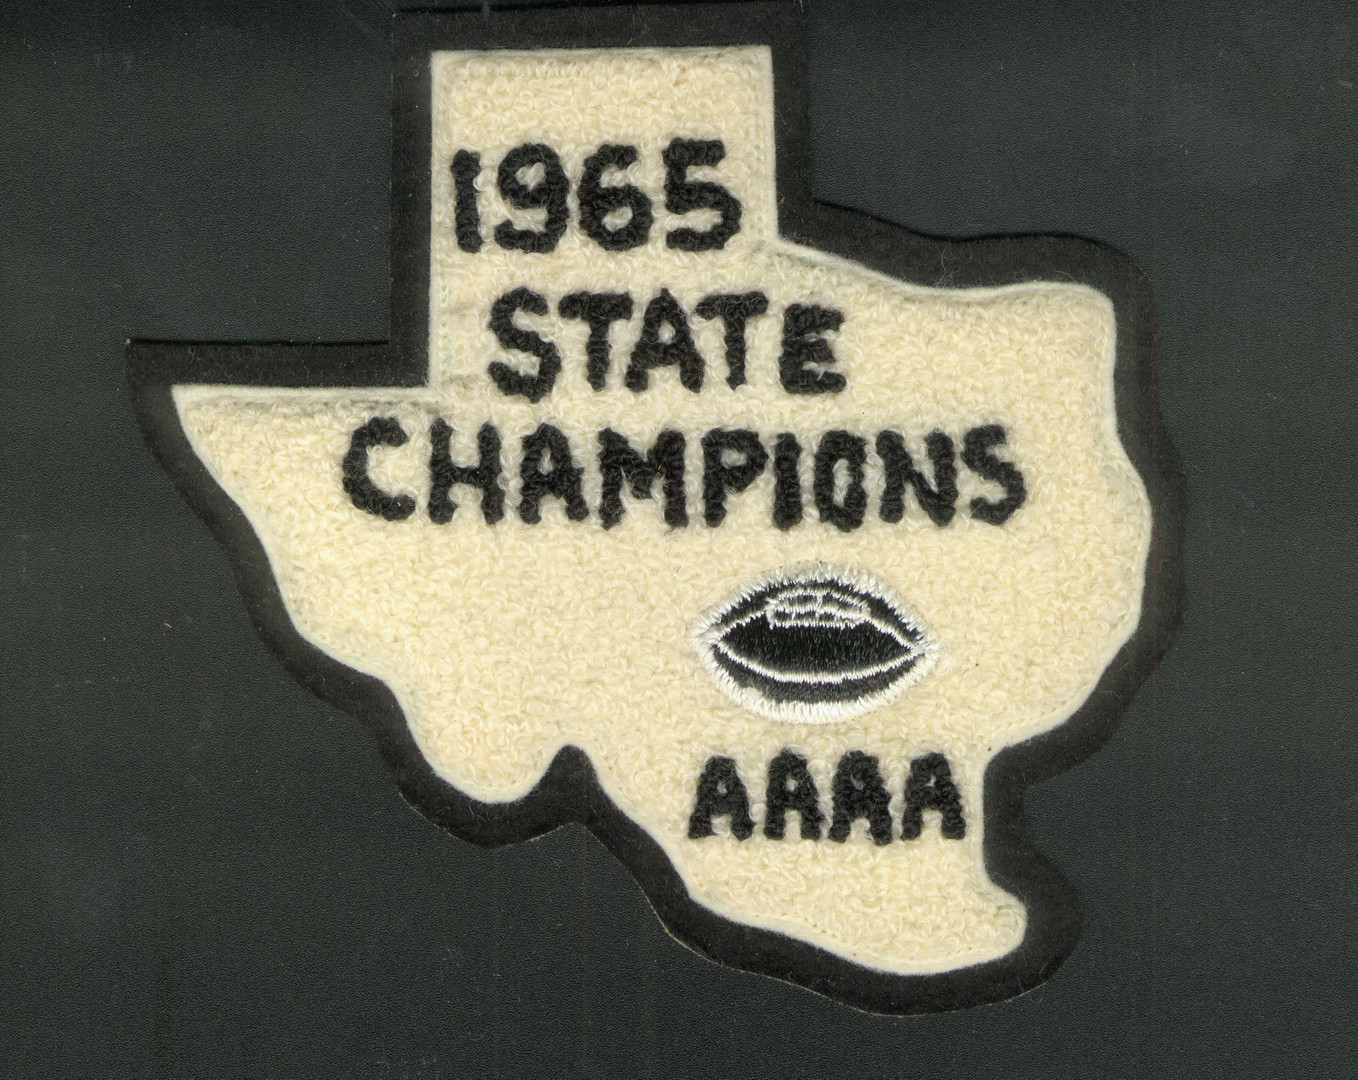 Odessa Permian 1965 State Champion Patch